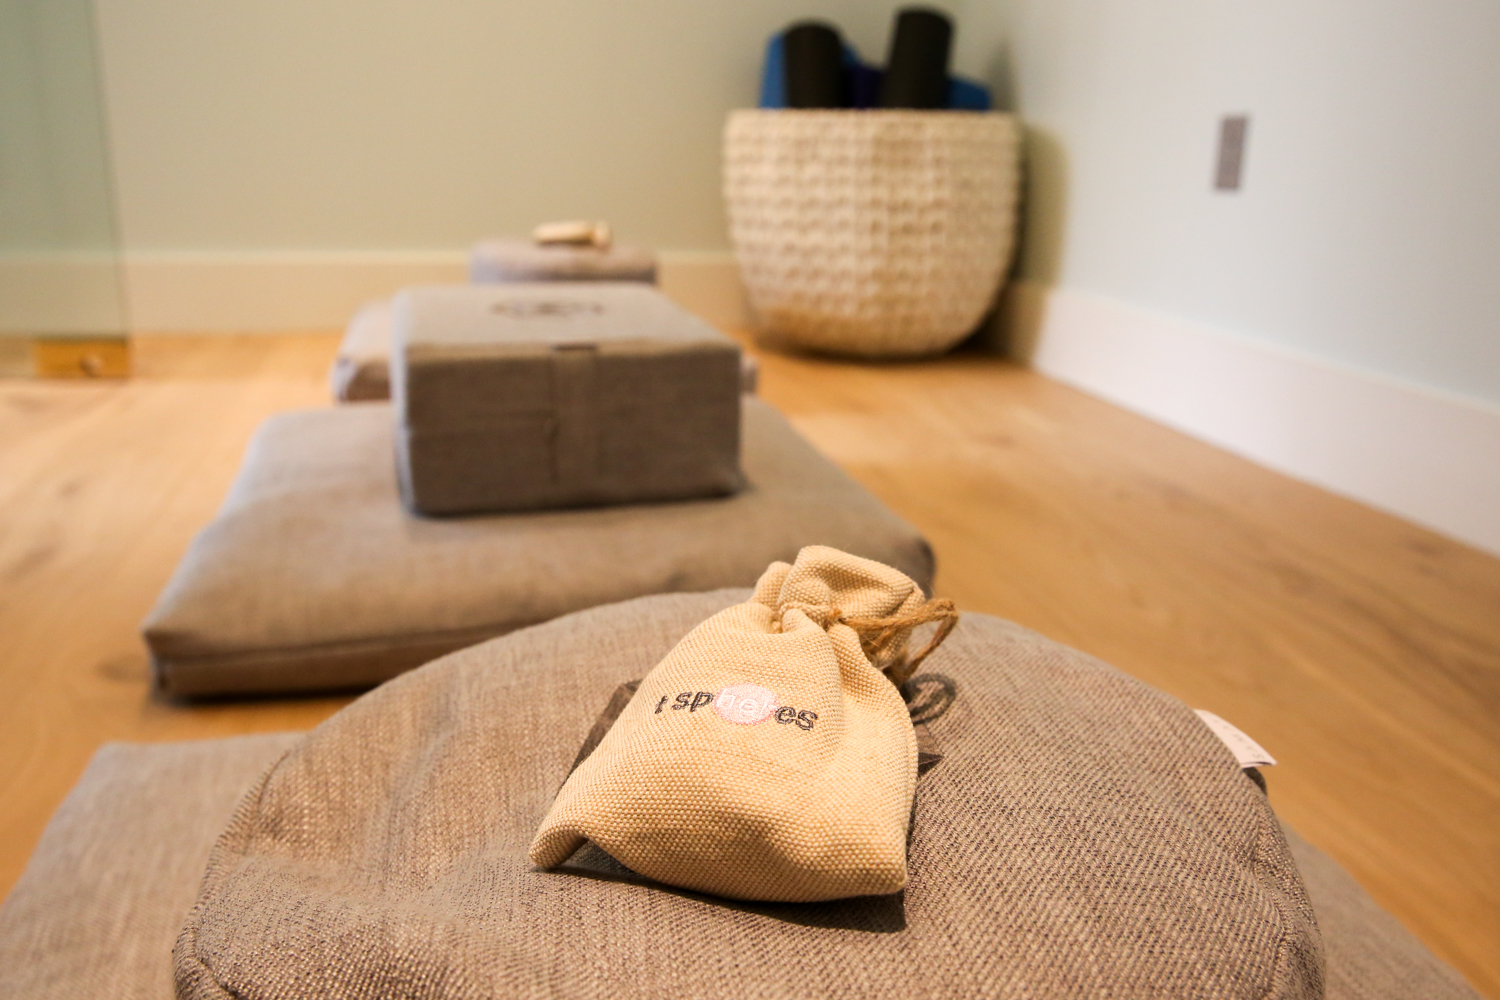 There's a small meditation room, too, if the stress of the day takes its toll. (Image: Amanda Andrade-Rhoades/ DC Refined)